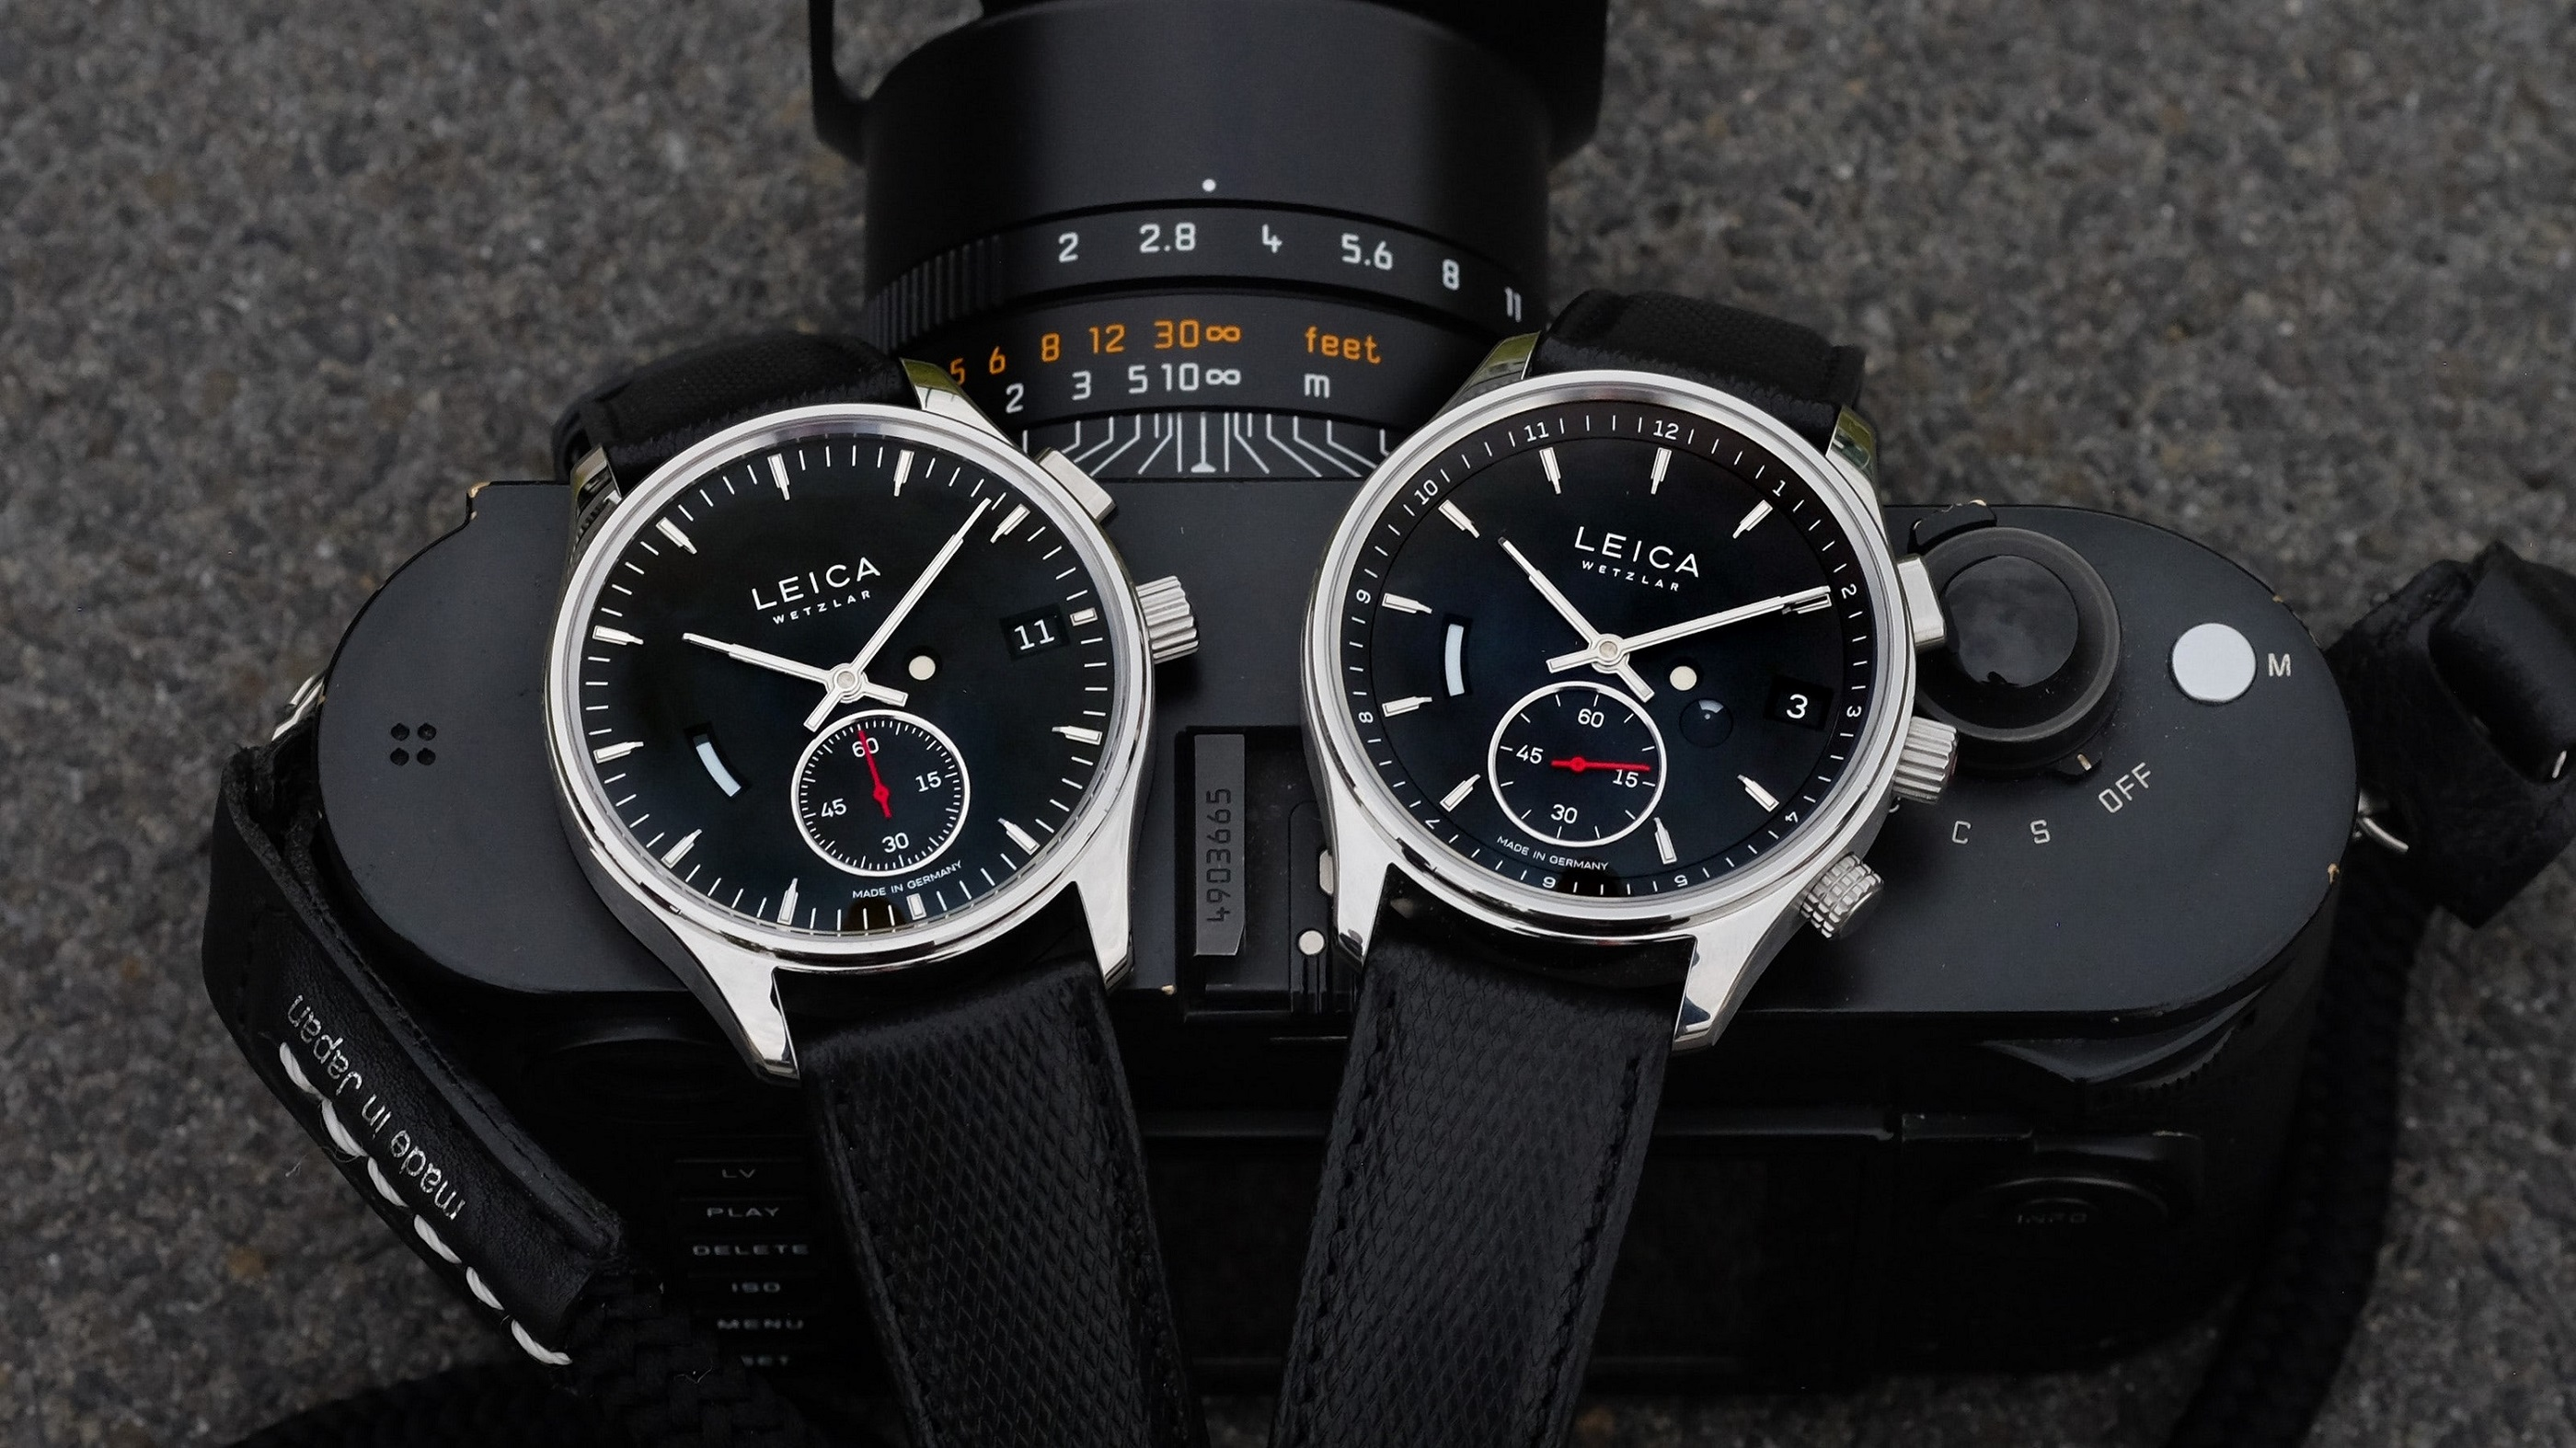 Leica ventures into the unknown with its own timepieces